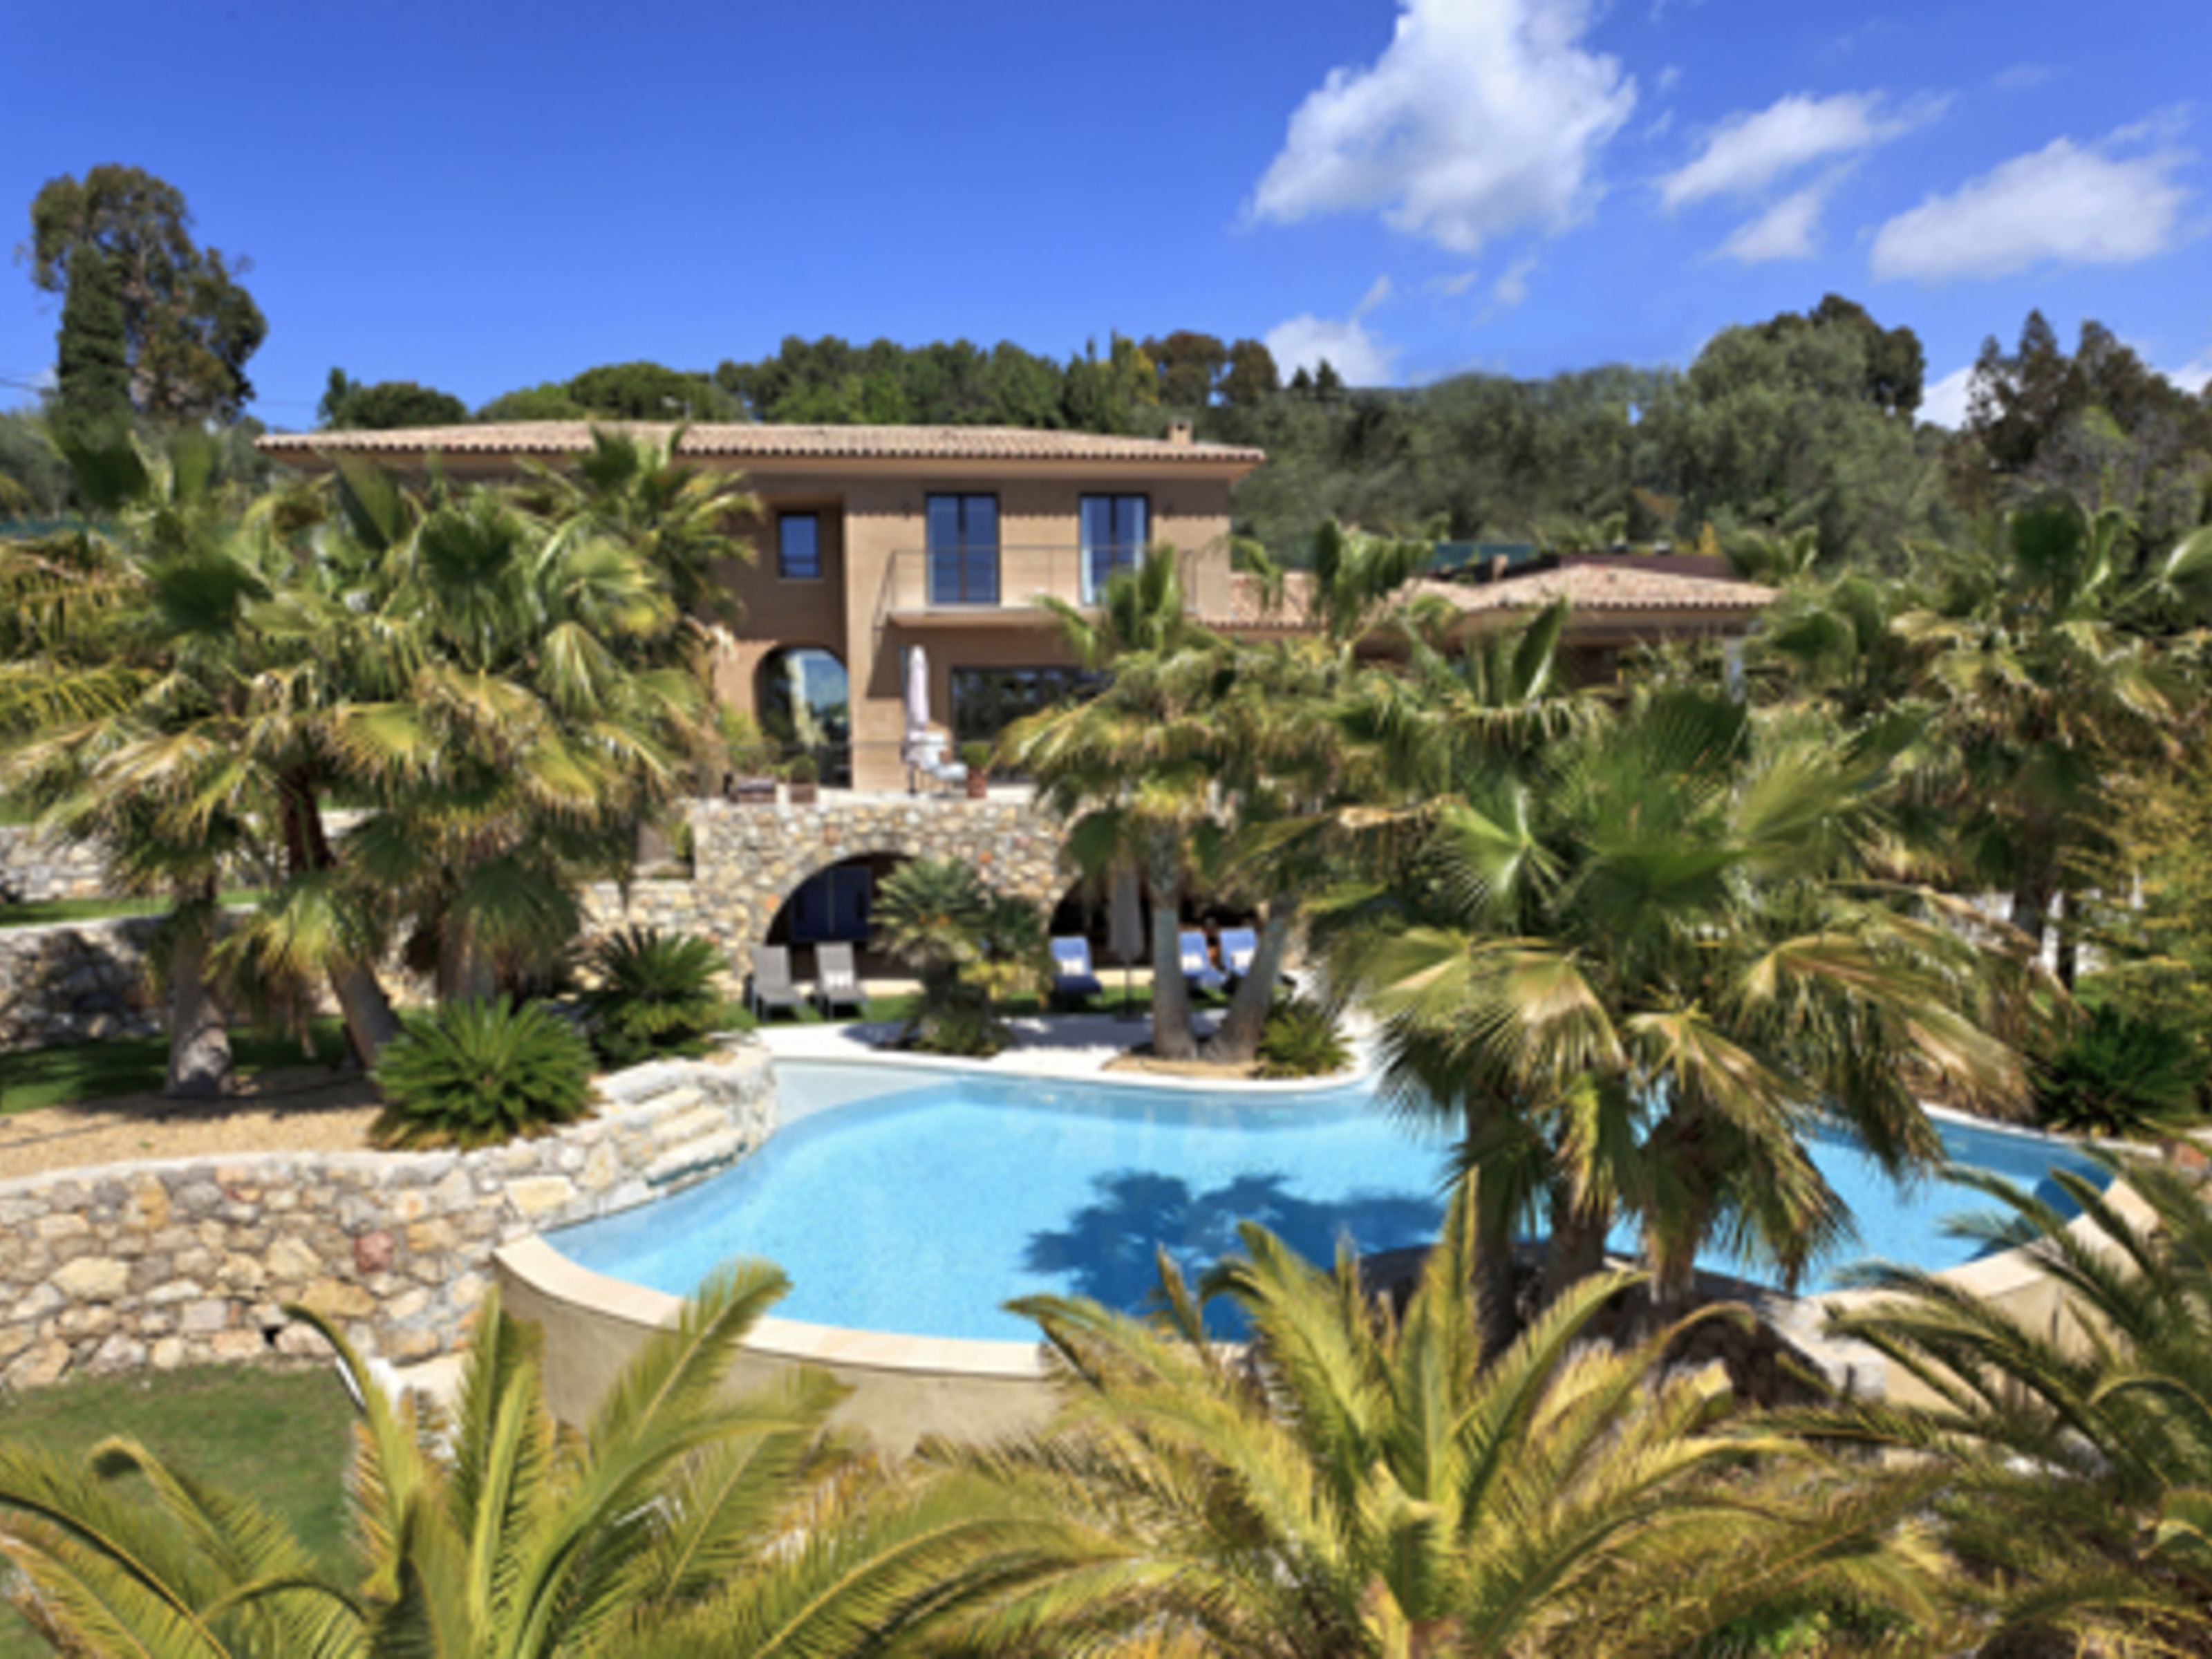 Single Family Home for Sale at Mougins-contemporary style property-view on the village Mougins, Provence-Alpes-Cote D'Azur 06250 France